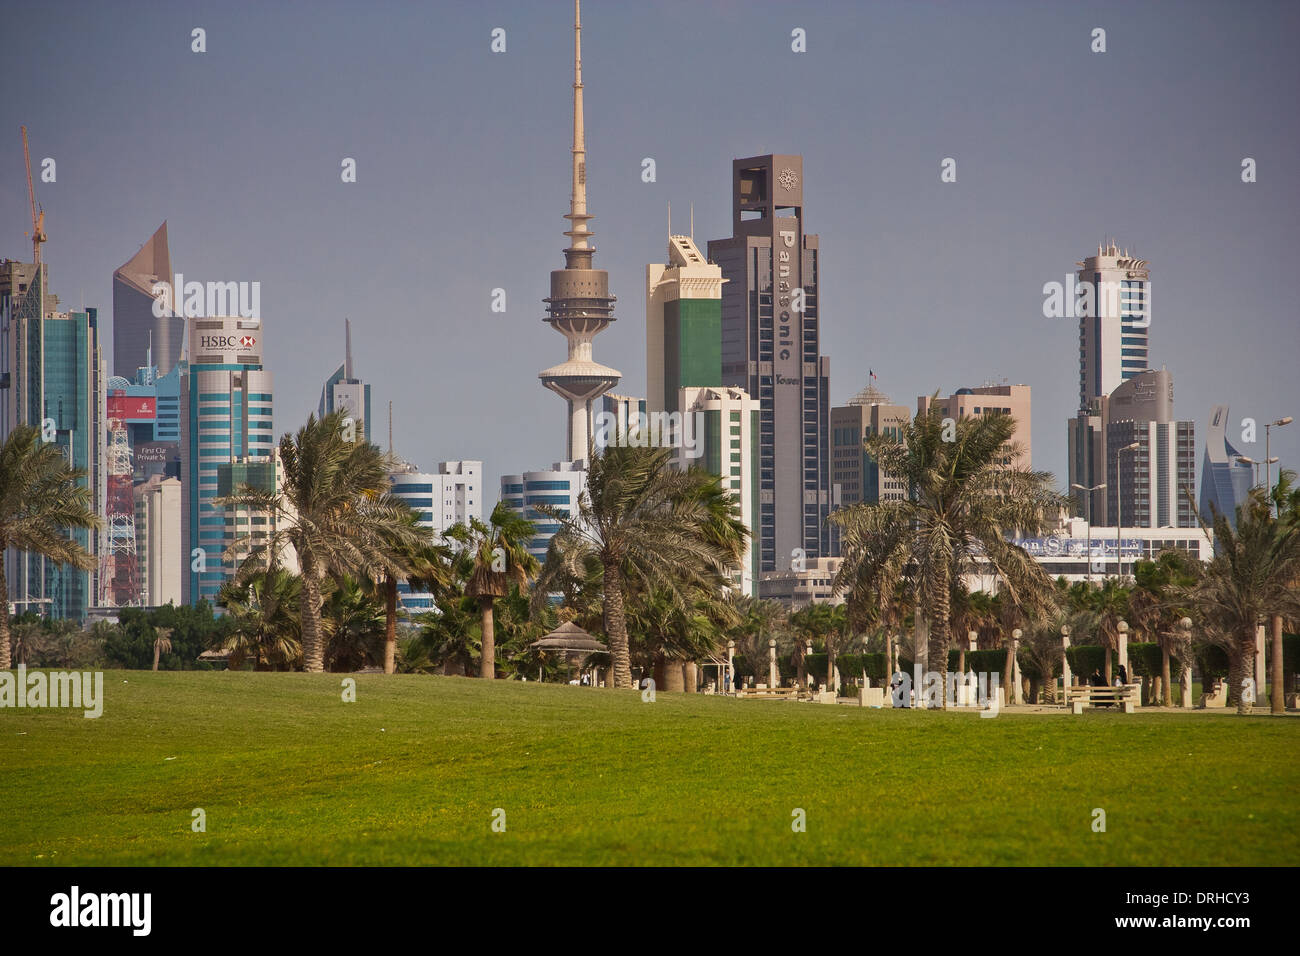 Kuwait skyscrapers, Middle east, Kuwait City Stock Photo: 66151543